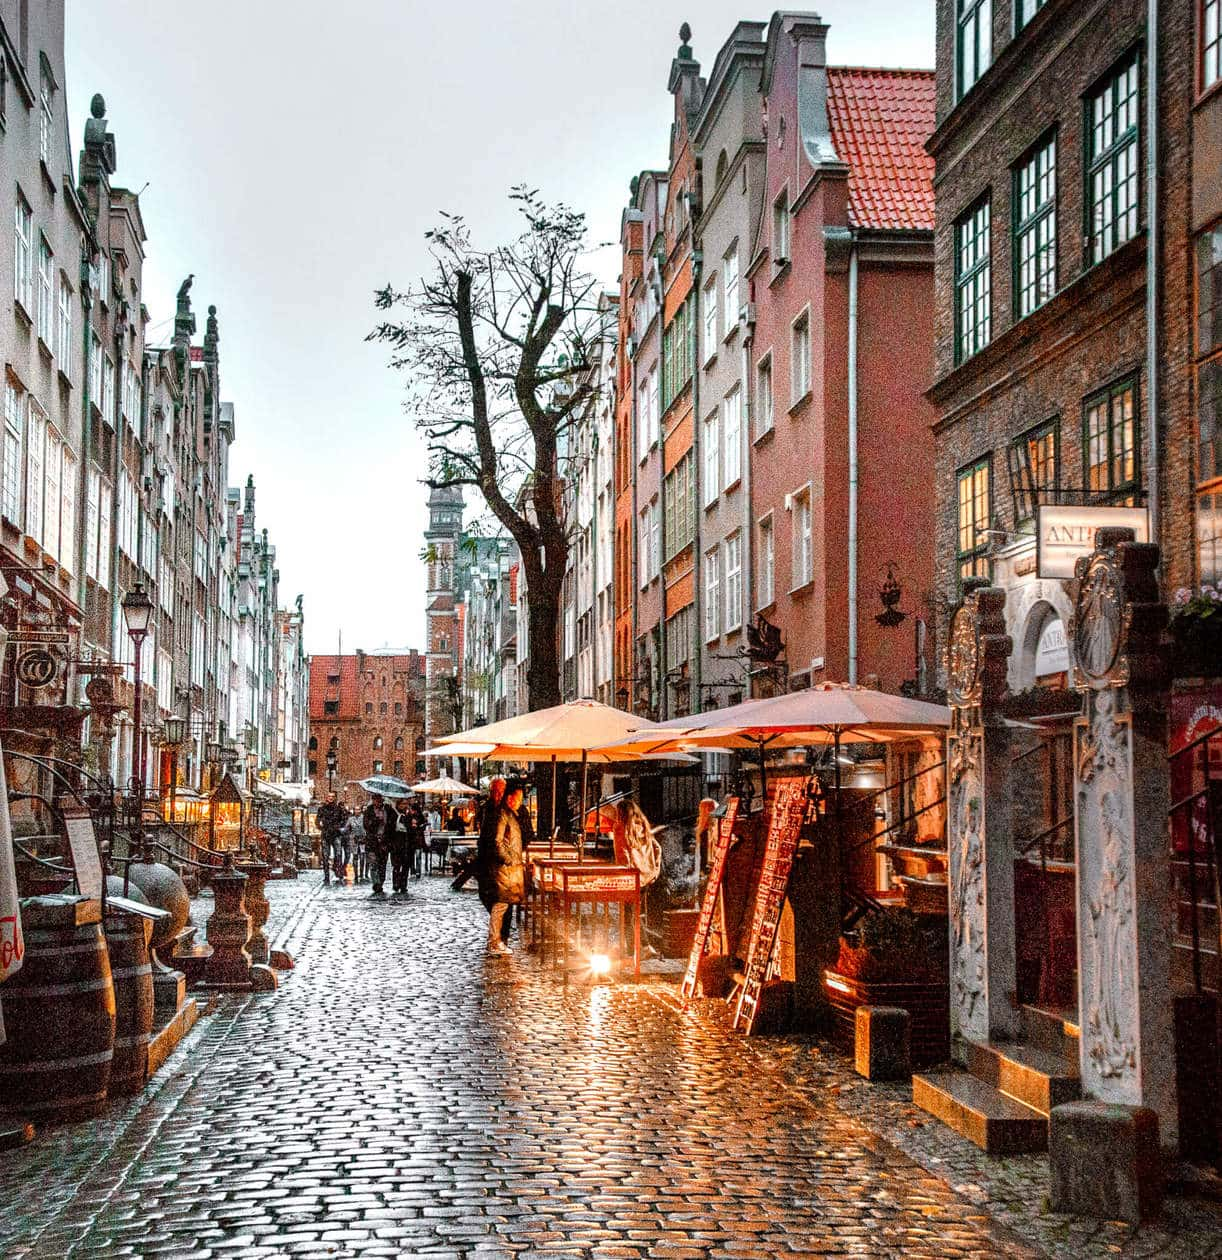 Mariacka Street // There is no shortage of picturesque views, cozy streets and Instagrammable photo spots in Gdansk, Poland. Click to discover my top 6 streets for photo inspiration in Old Town.